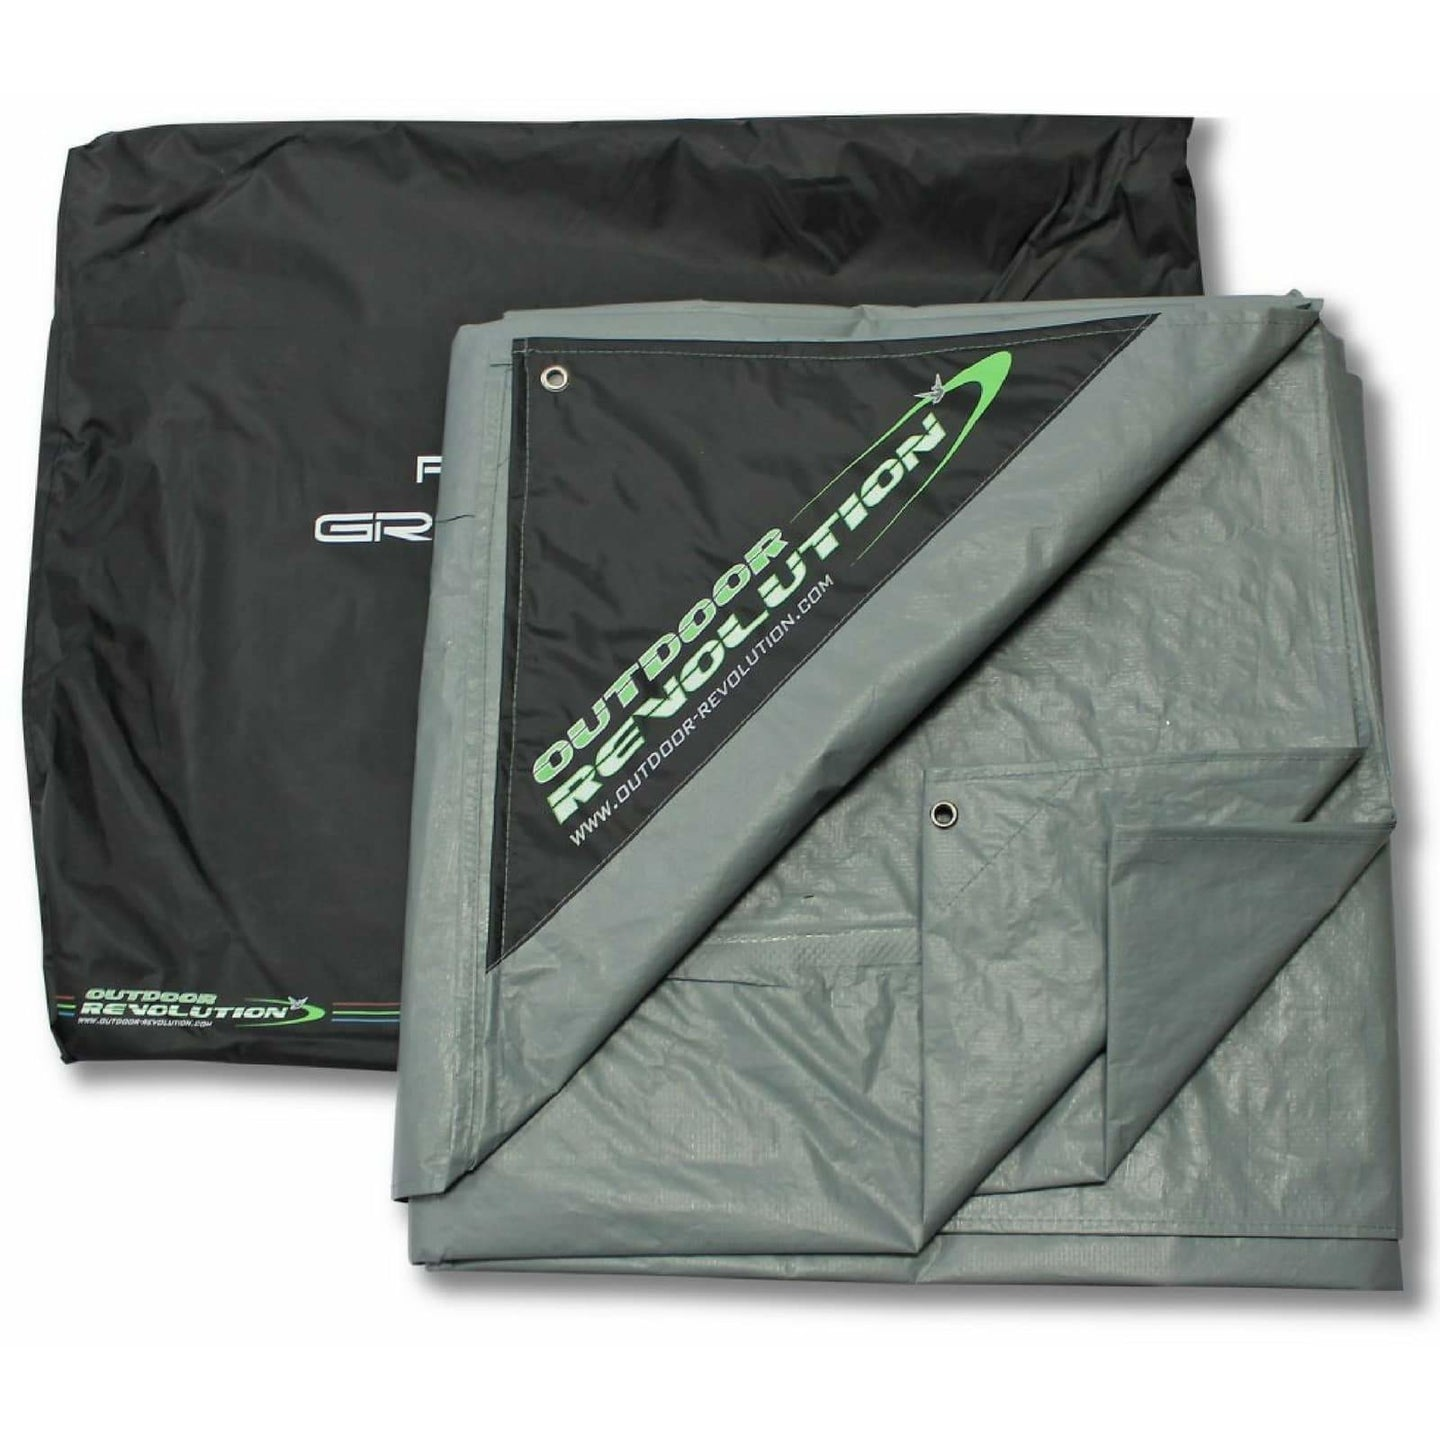 Outdoor Revolution Airedale 12 Tent Footprint Groundsheet OR17882 - Quality Caravan Awnings